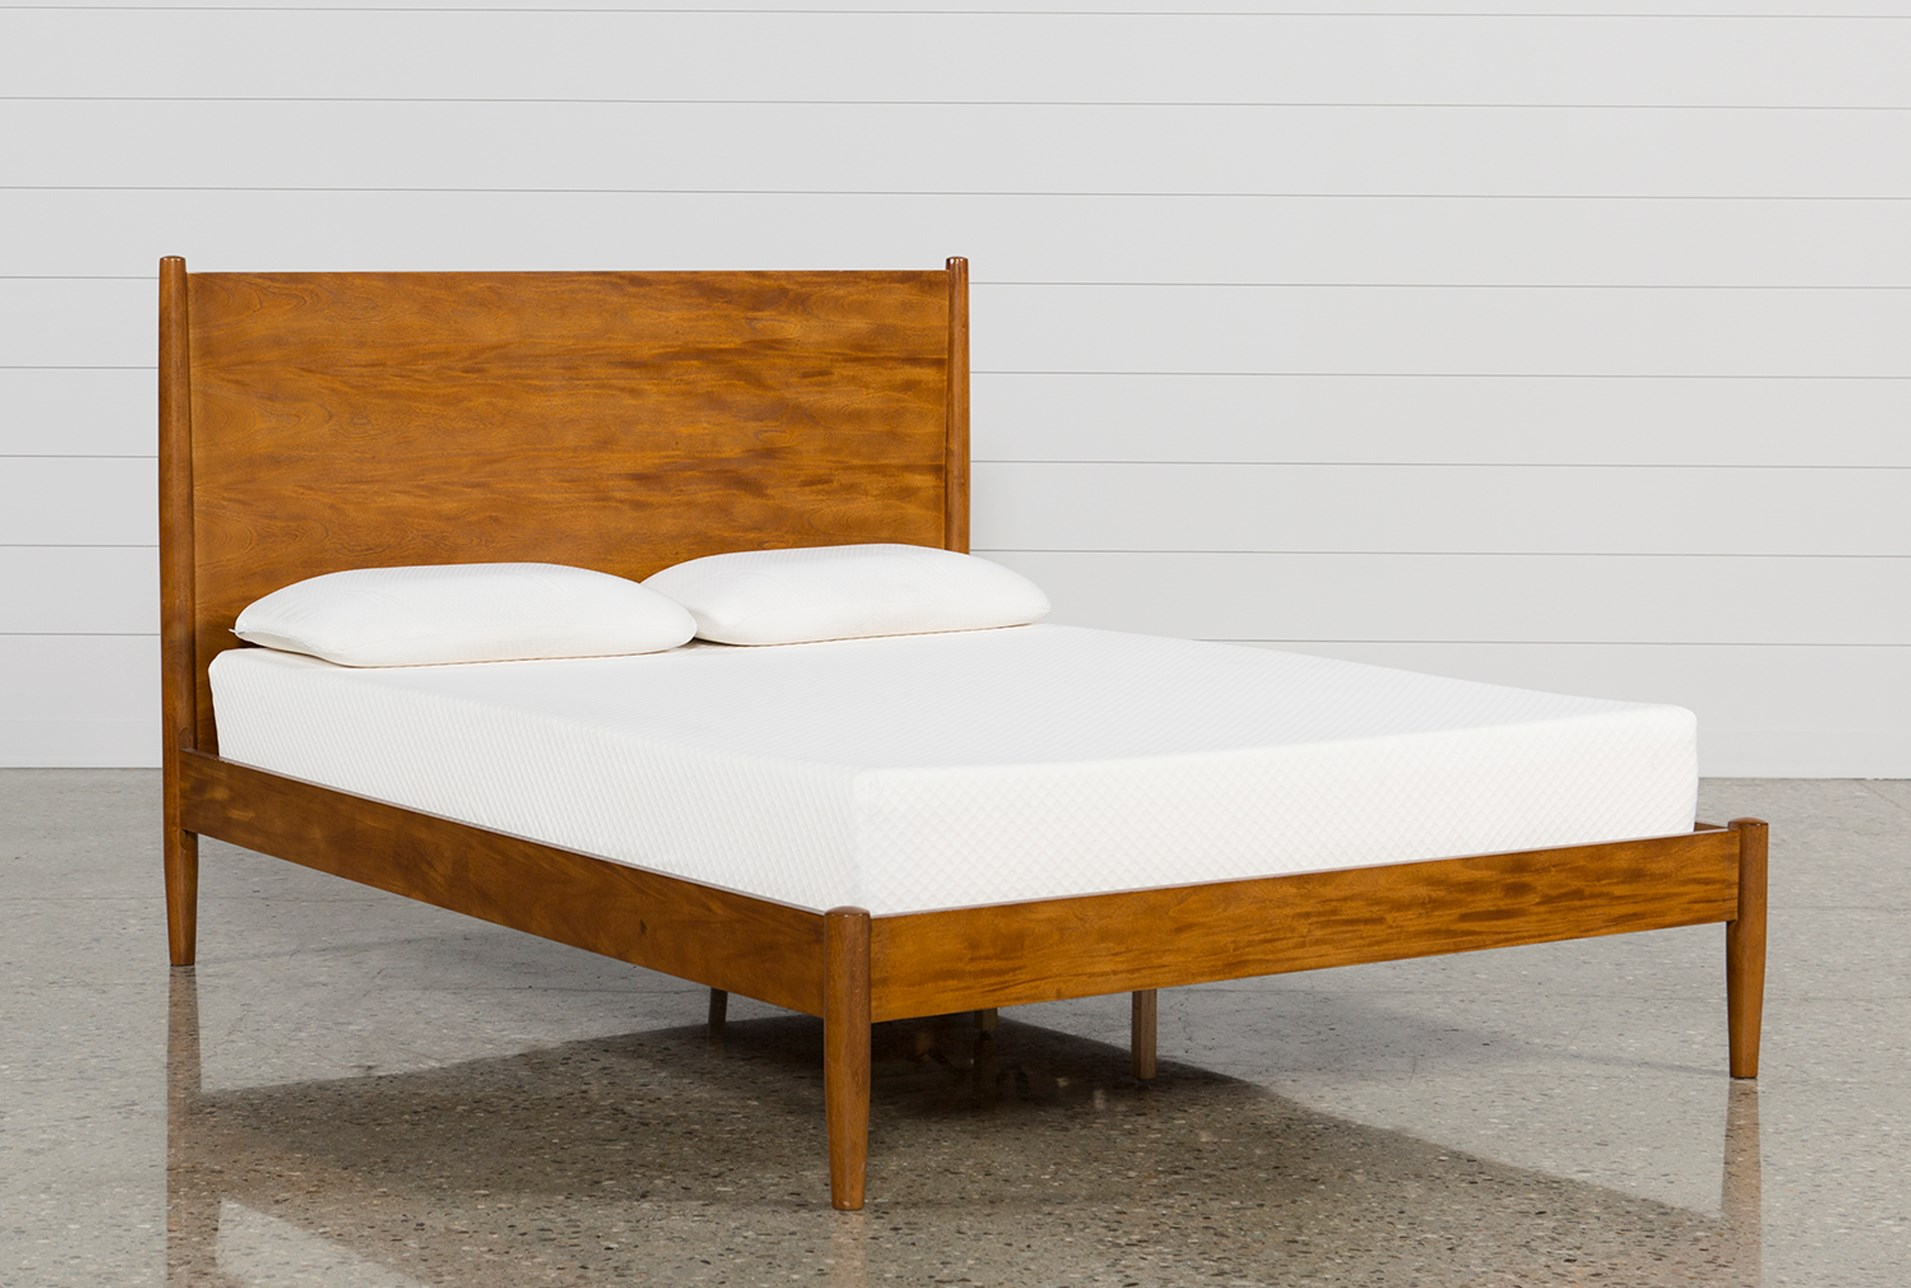 Alton Cherry Full Platform Bed Qty 1 Has Been Successfully Added To Your Cart